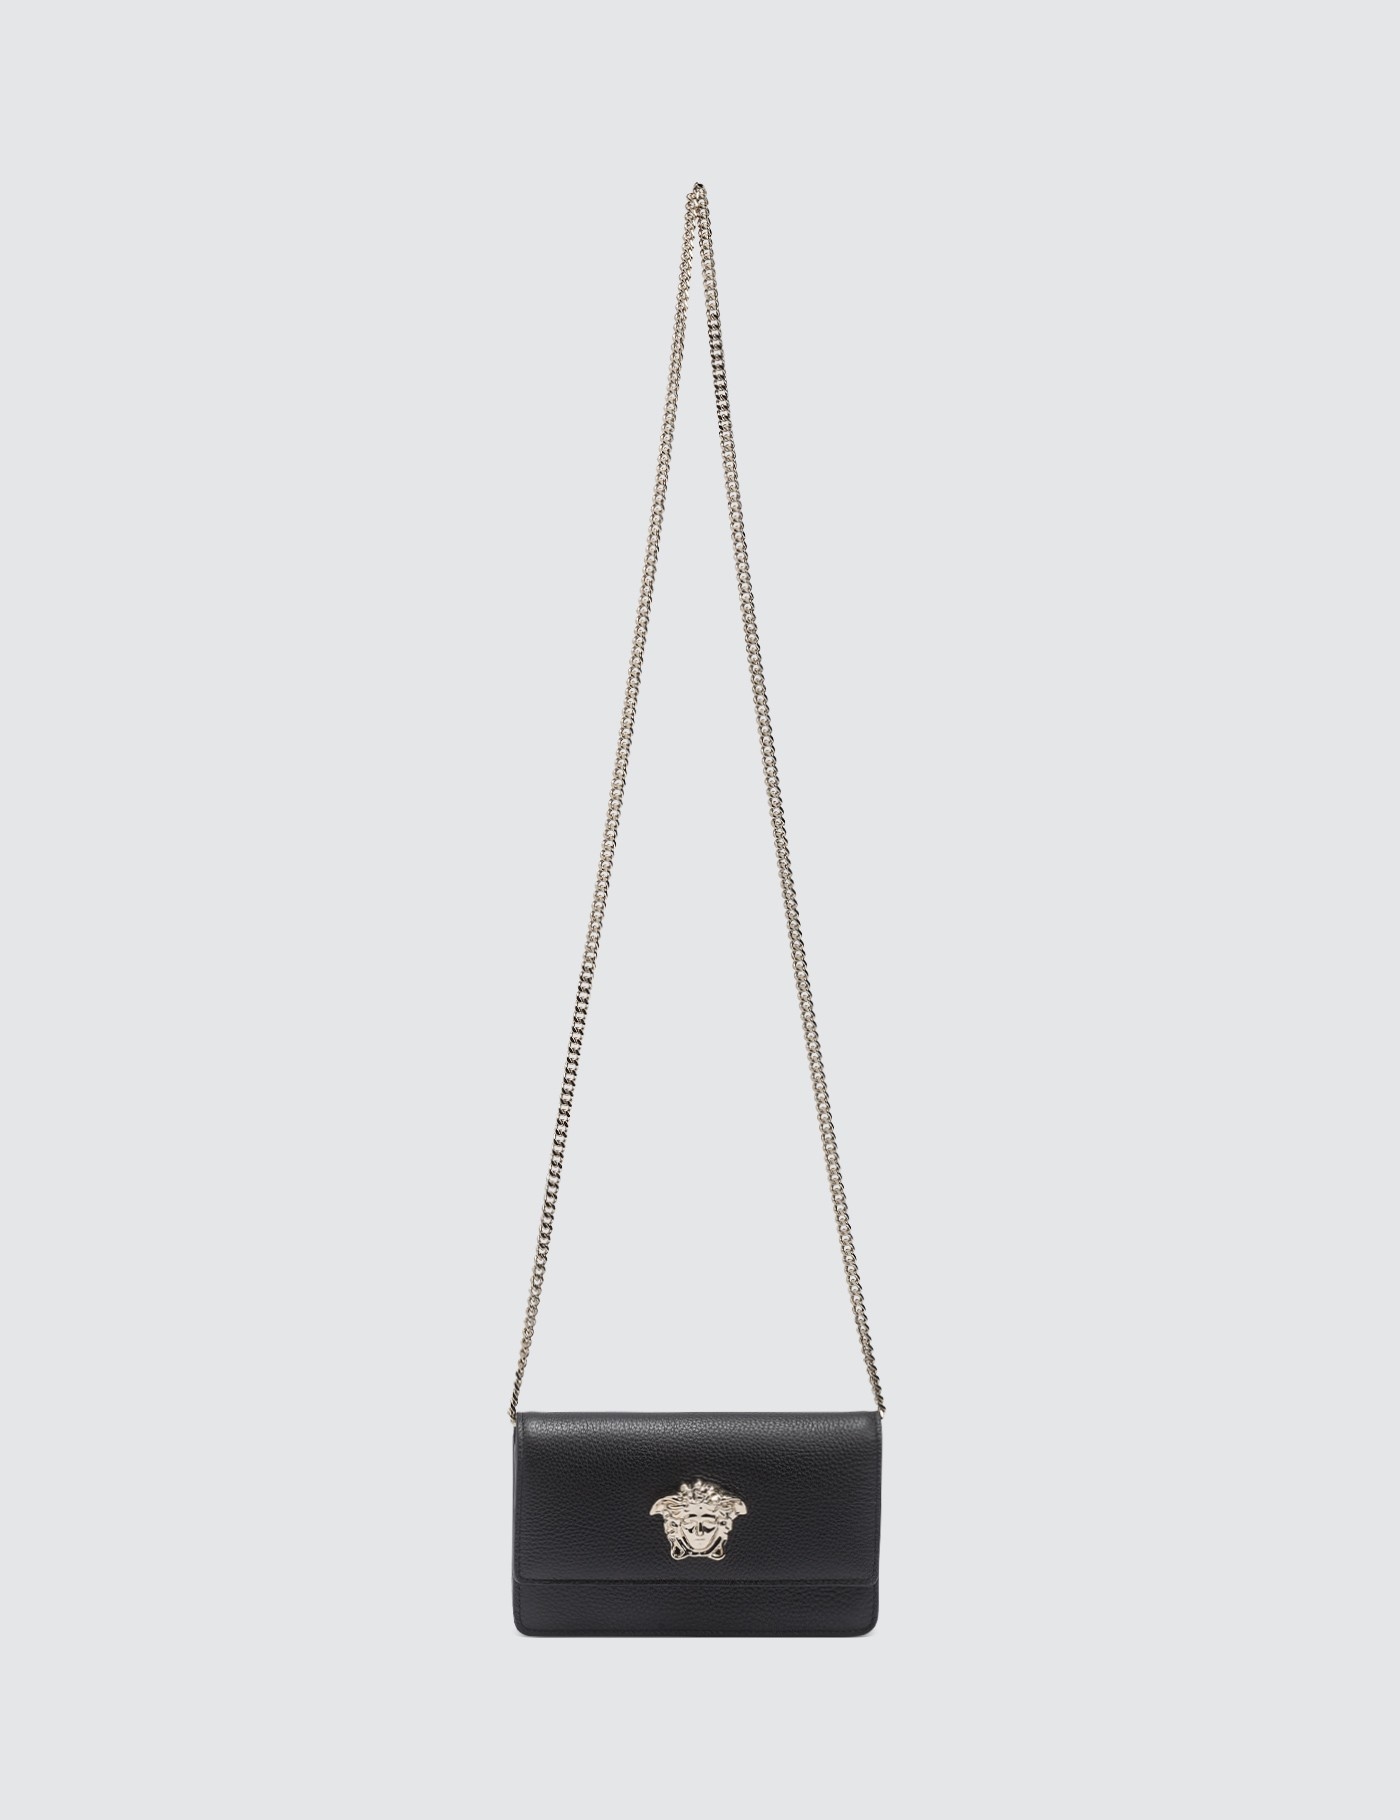 564f6acdab Small Palazzo Evening Bag, Versace